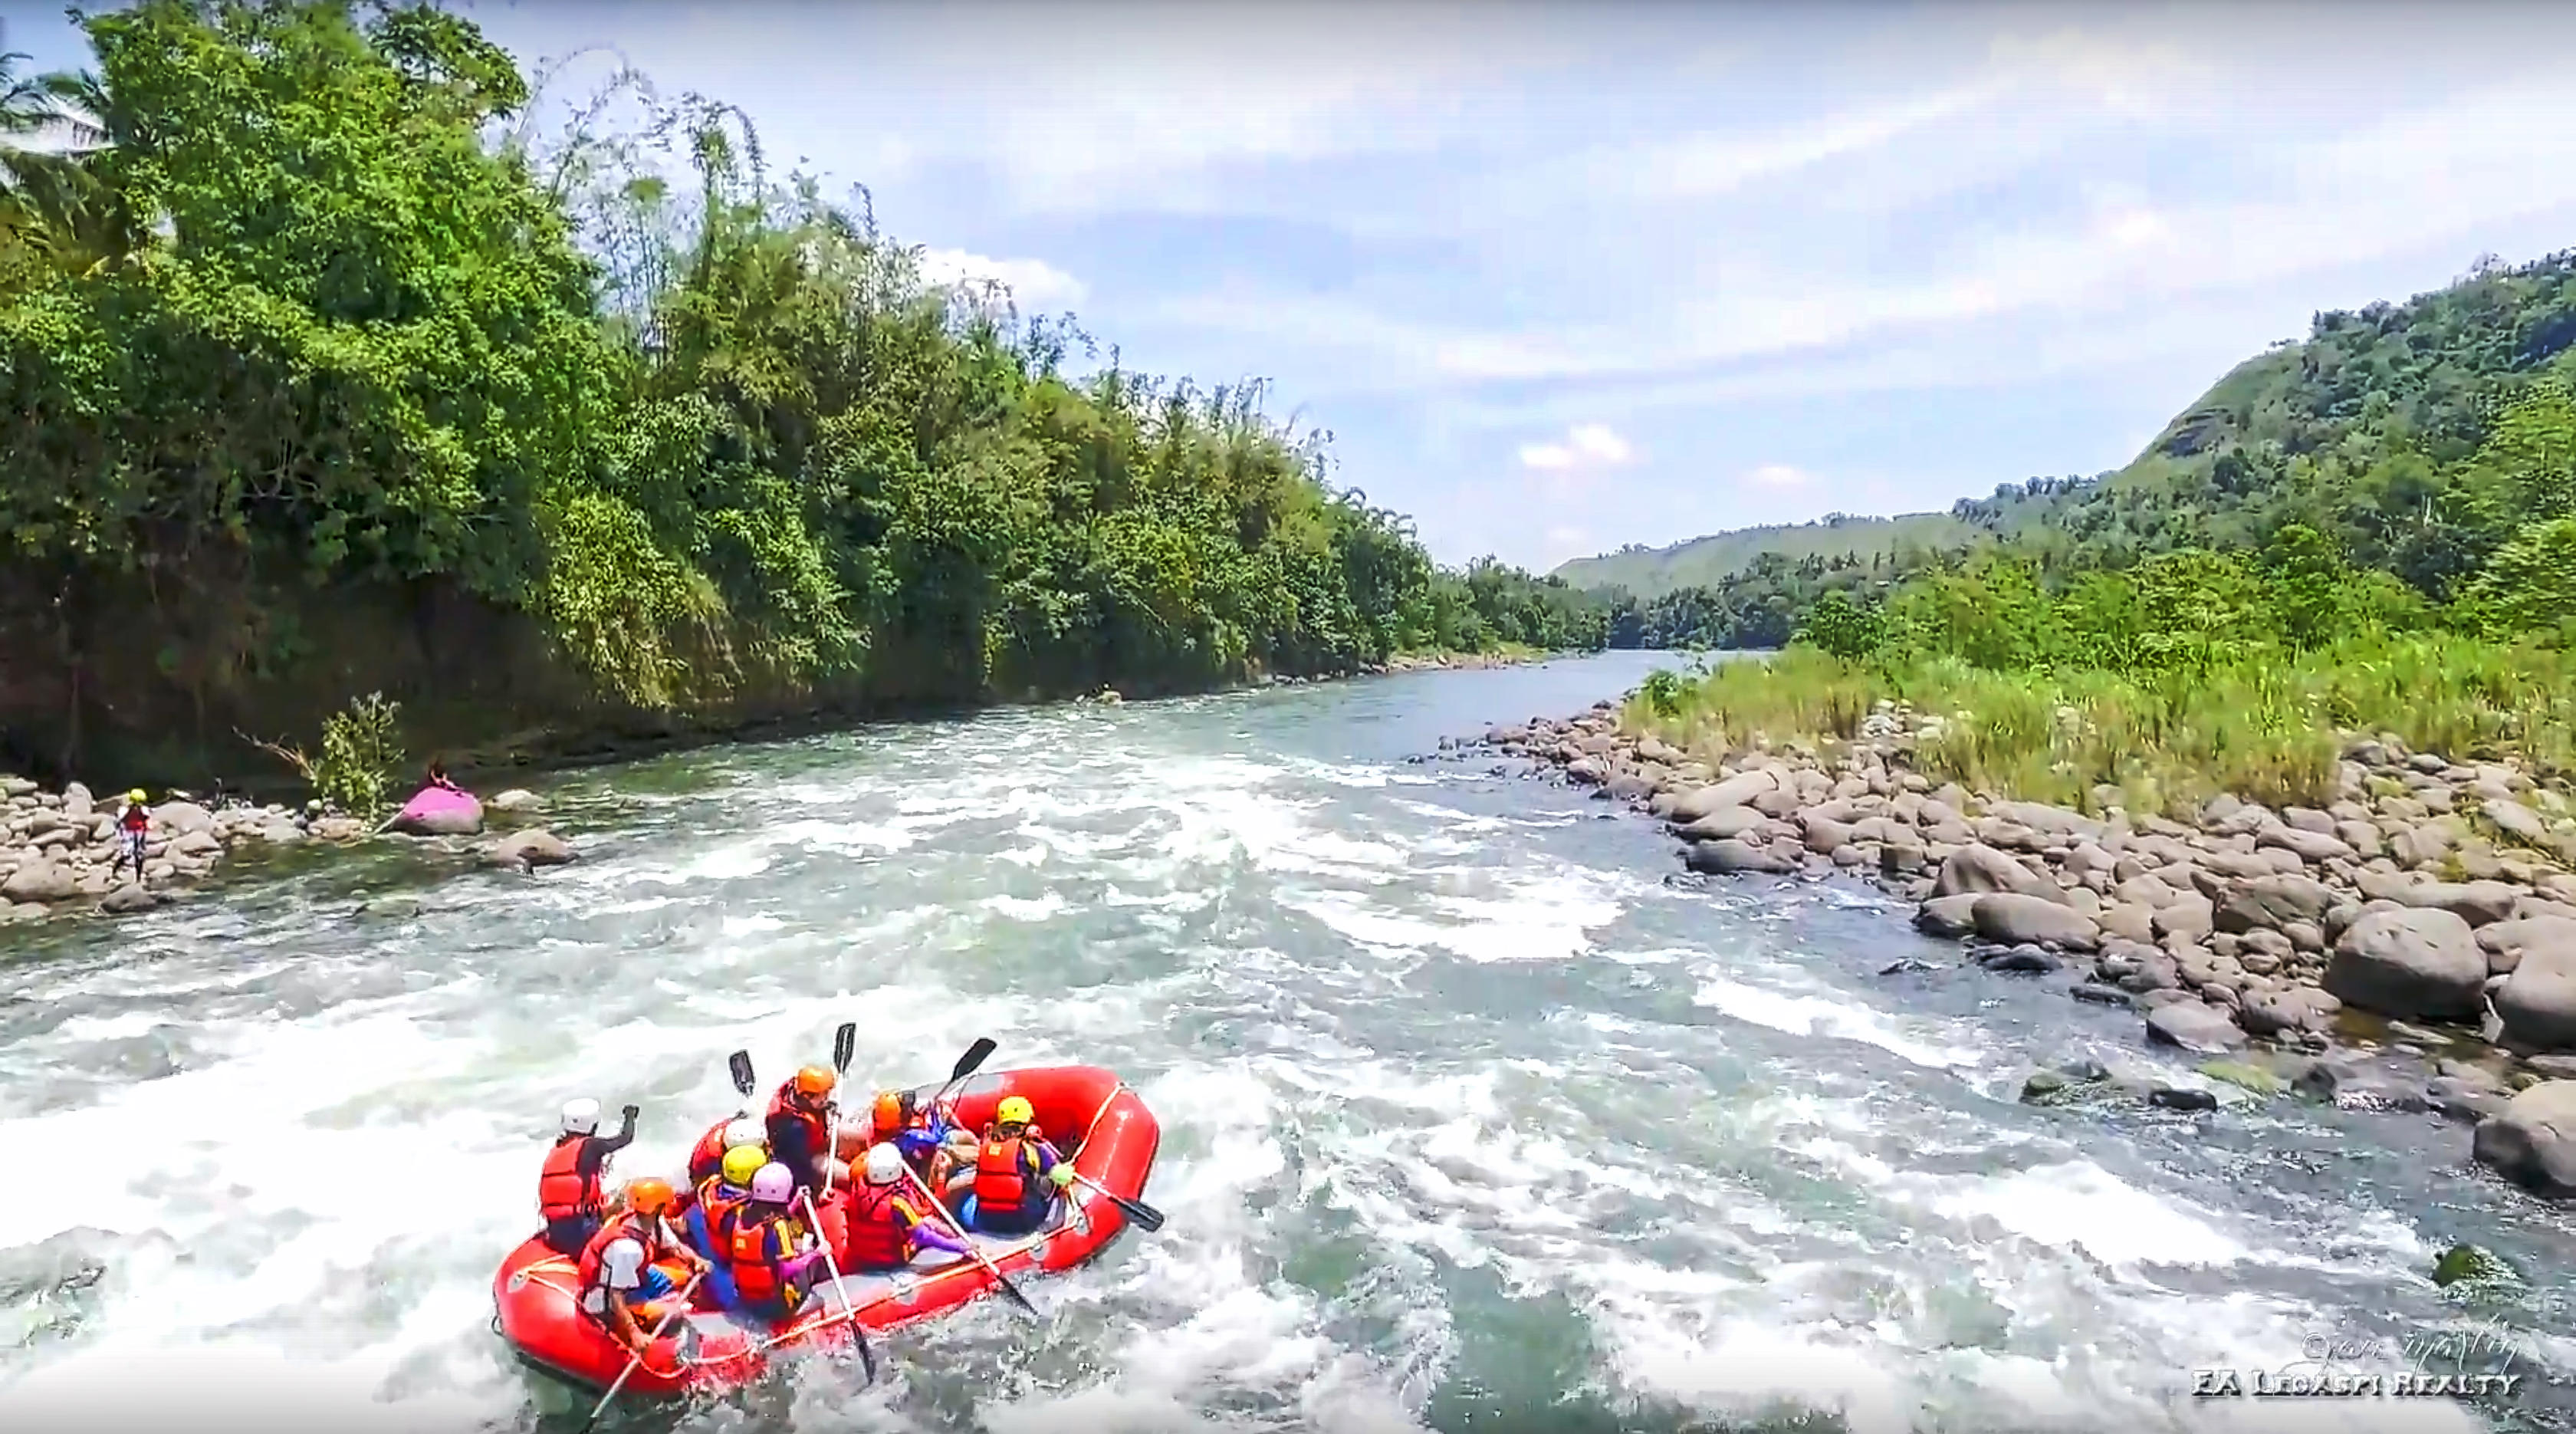 People riding a water rafting boat in Cagayan de Oro